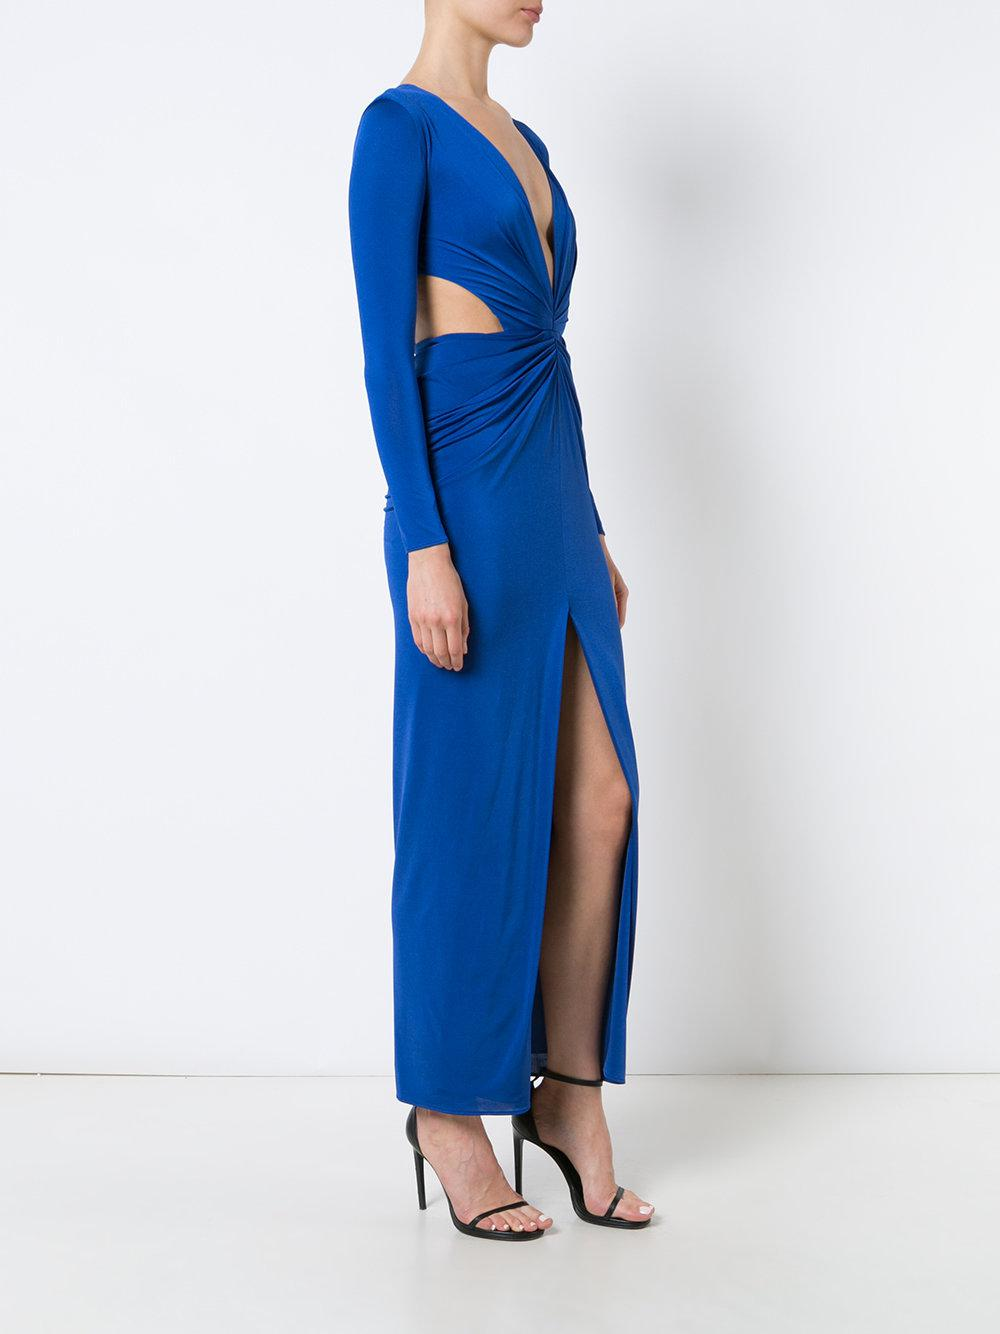 Outlet Shop Offer Scarlett dress - Blue Haney Quality From China Cheap MG8JxltU